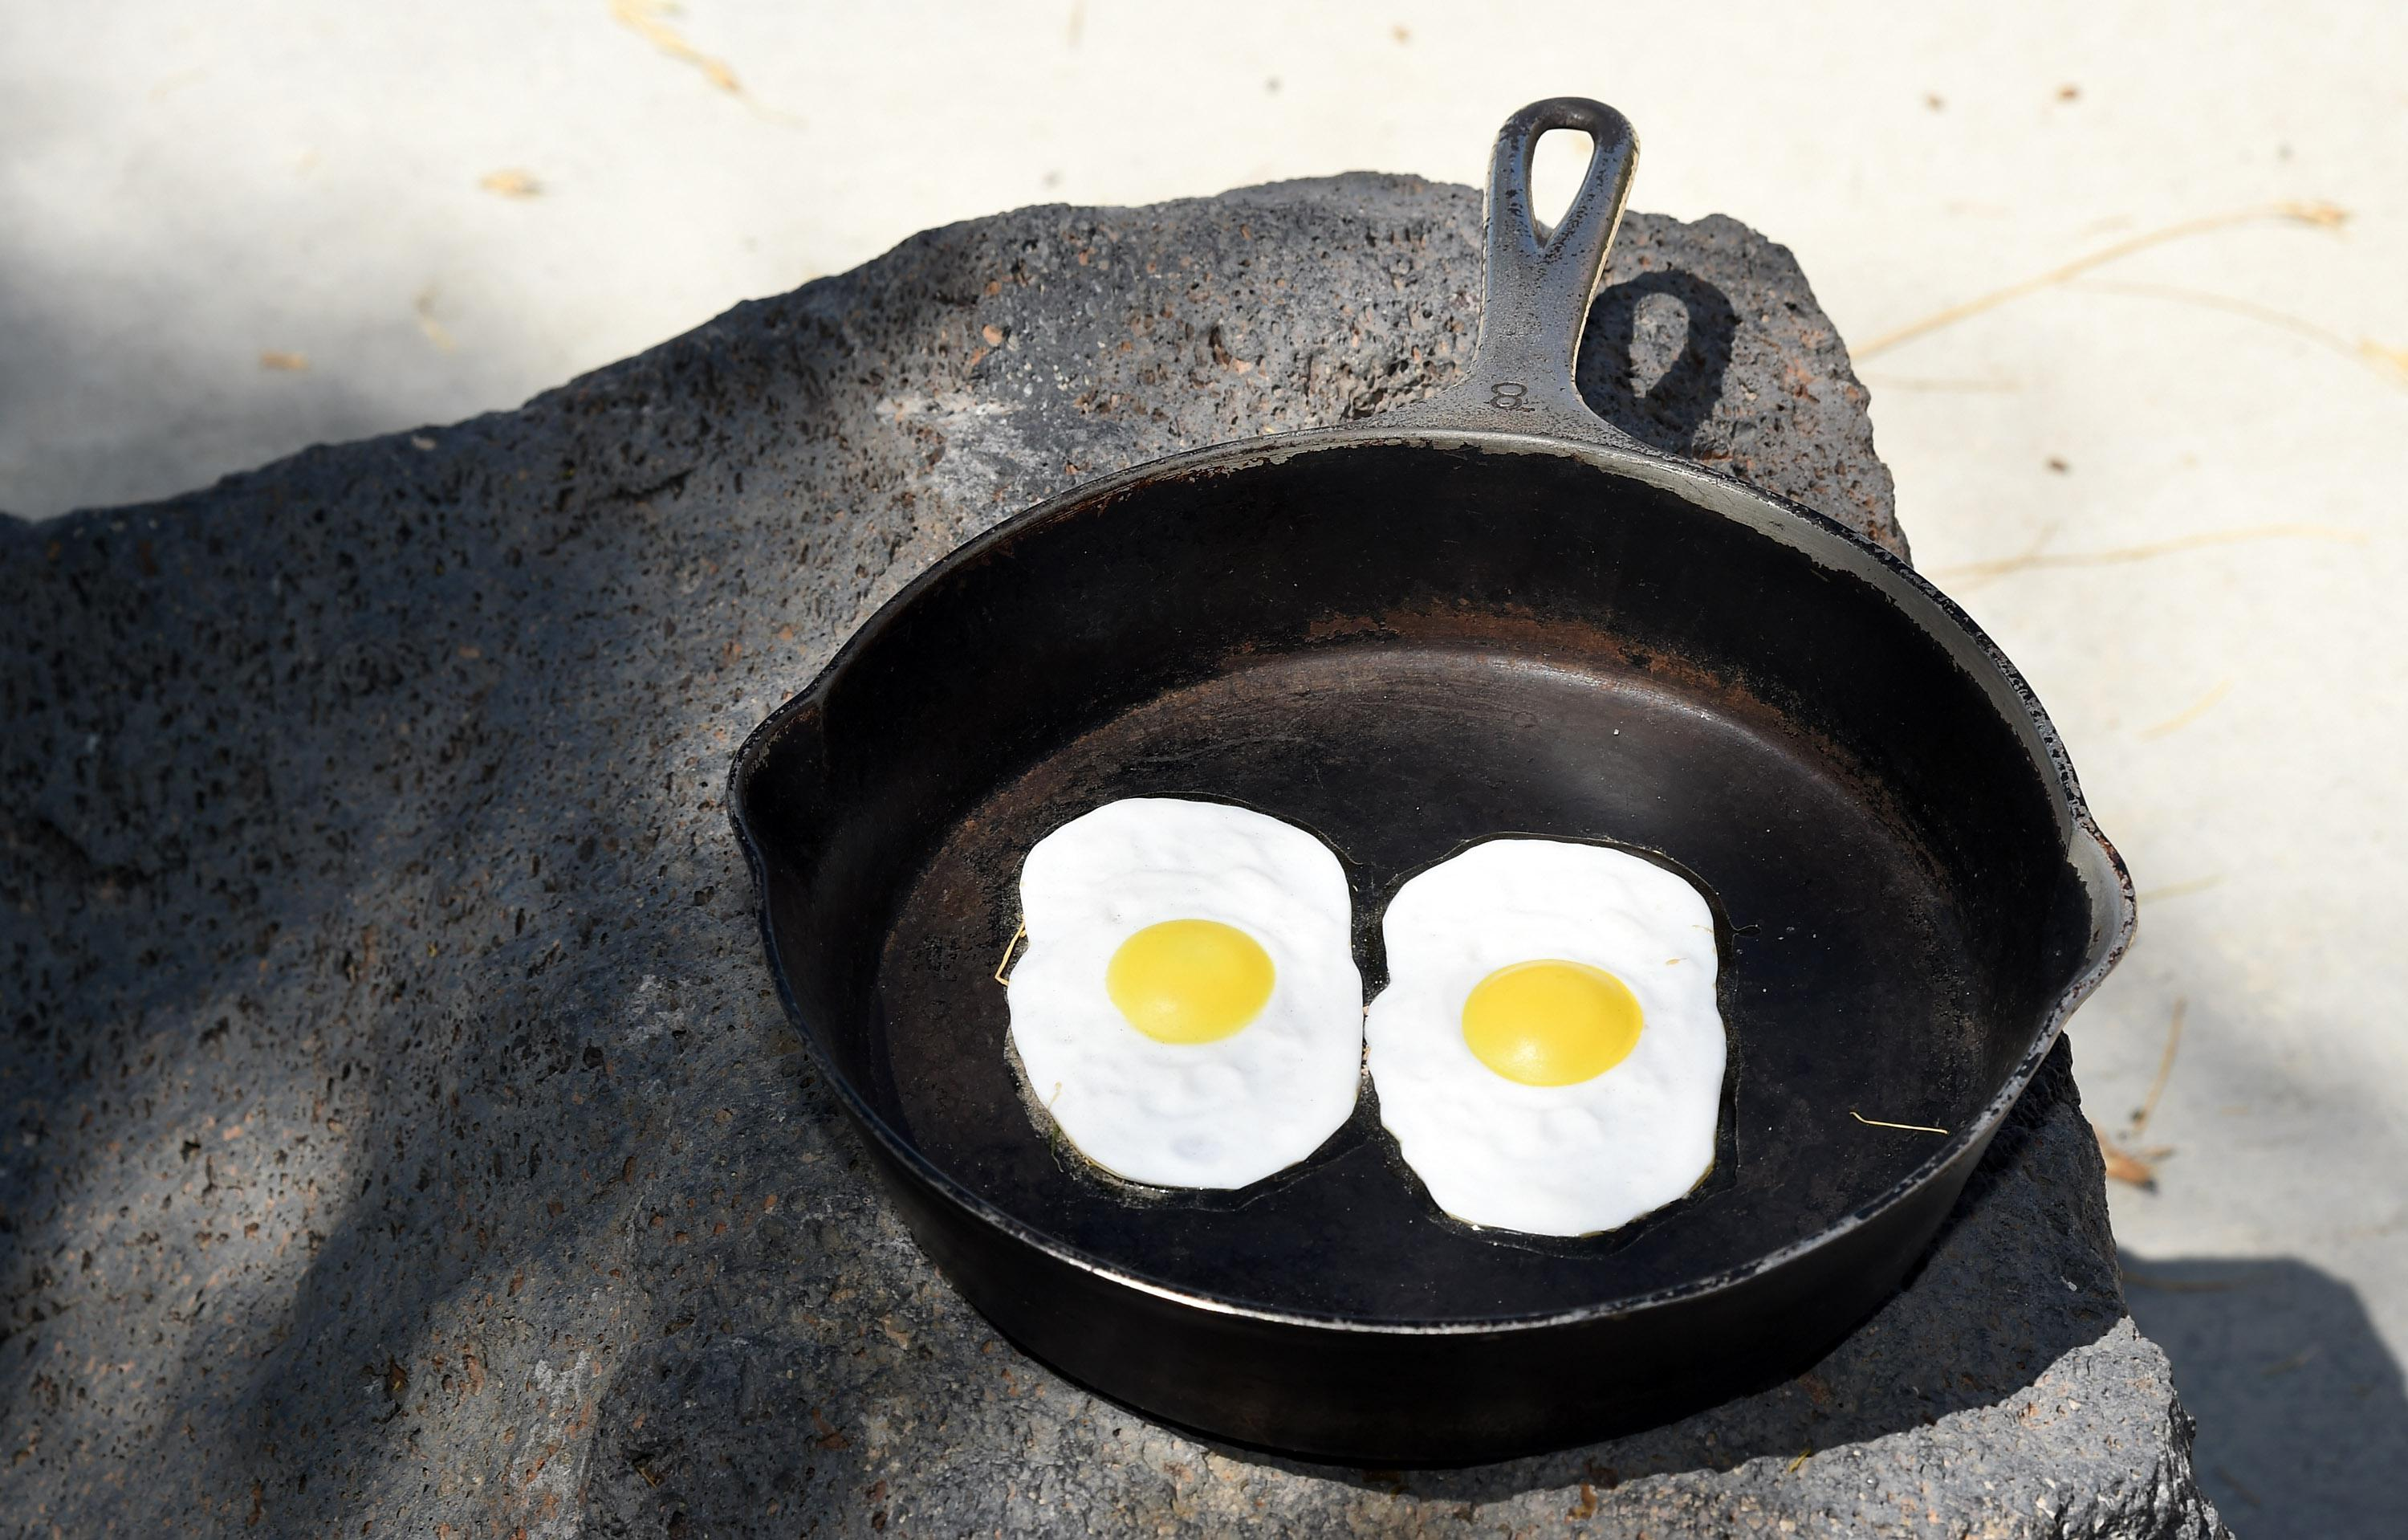 Fake eggs in a frying pan are displayed near a 134-foot-high electronic sign that gives the temperature on July 23, 2014 in Baker, California.